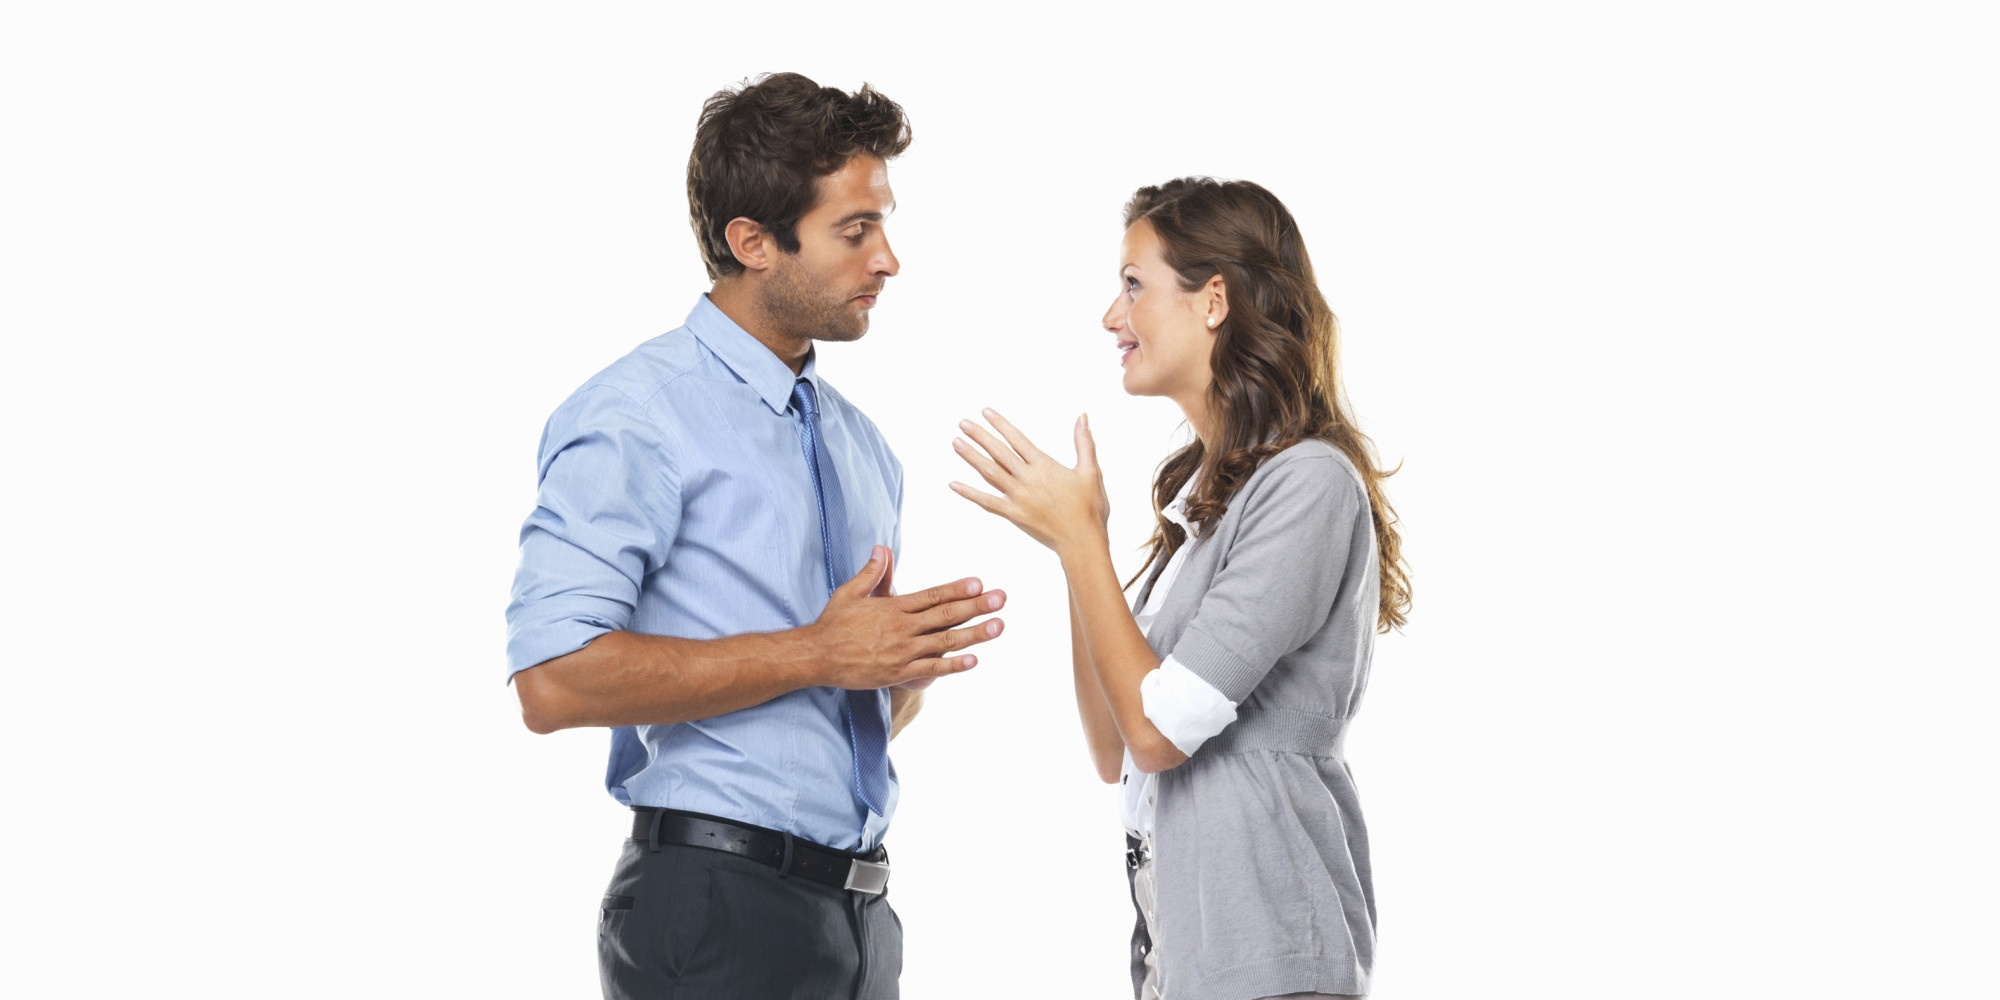 Two People Speaking Spanish Clipart